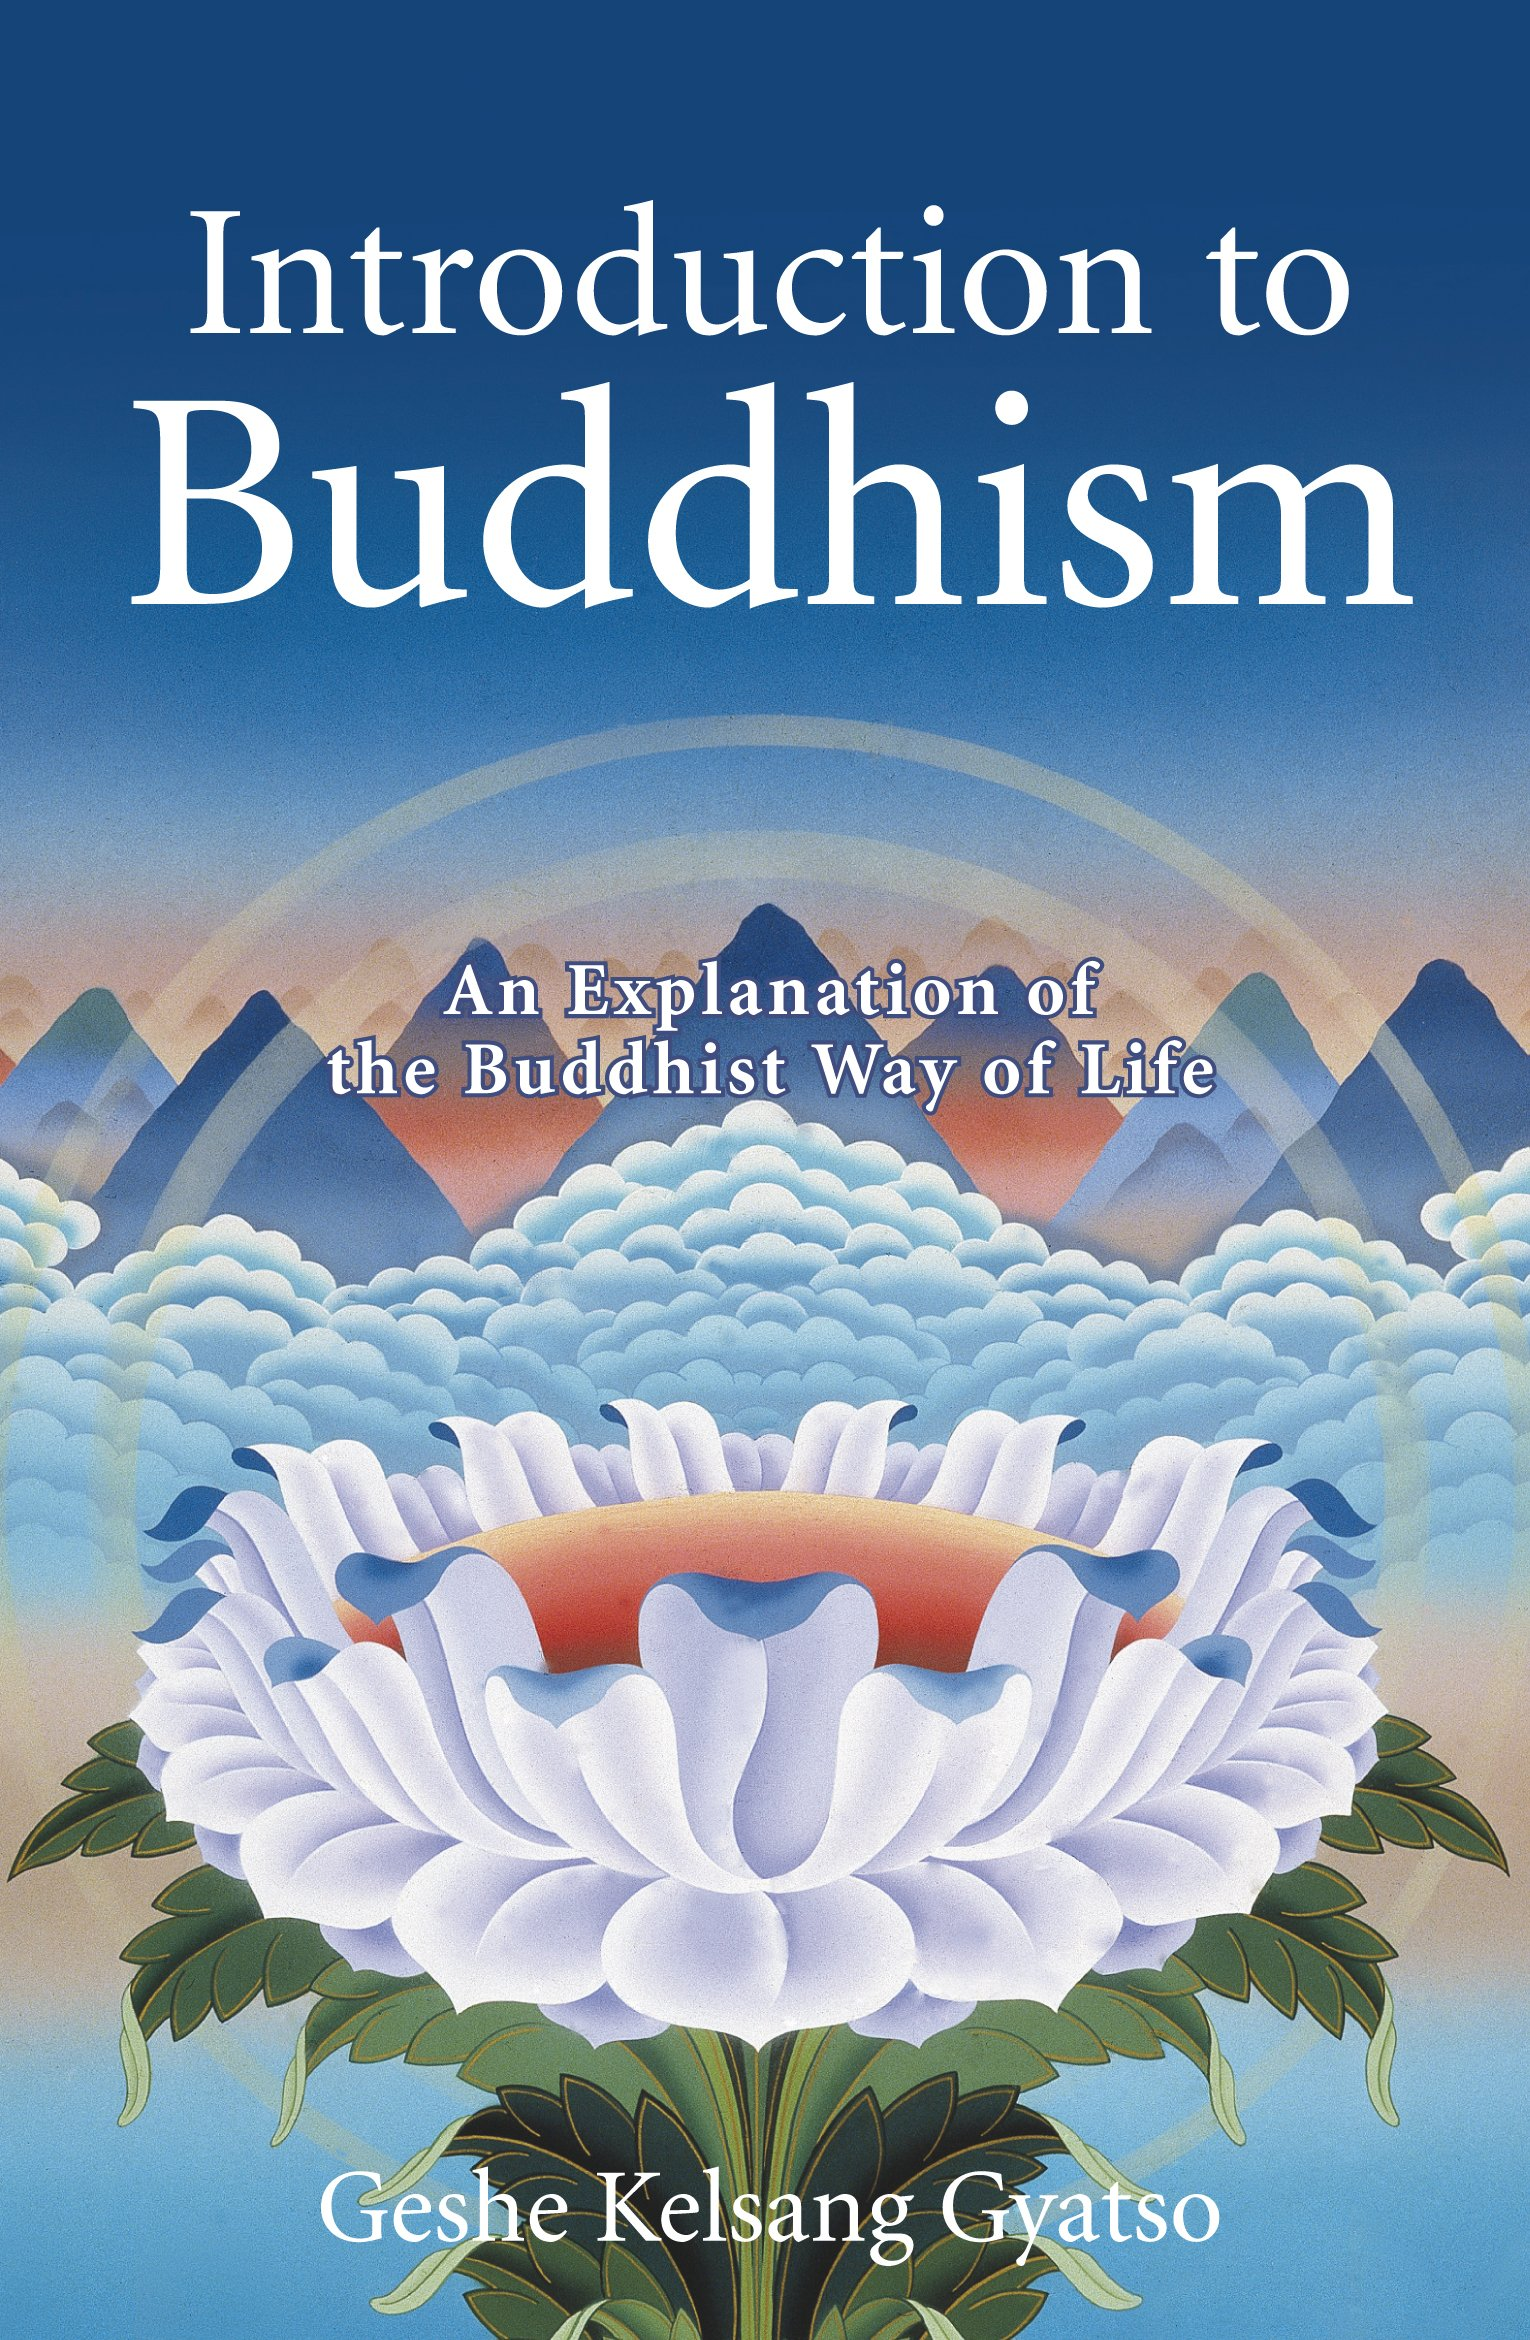 an introduction to buddhism Buddhism is a religion based on the teachings of siddhartha gautama, who was born in the fifth century bc in what is now nepal and northern india he came to be called the buddha, which means awakened one, after he experienced a profound realization of the nature of life, death, and existence .